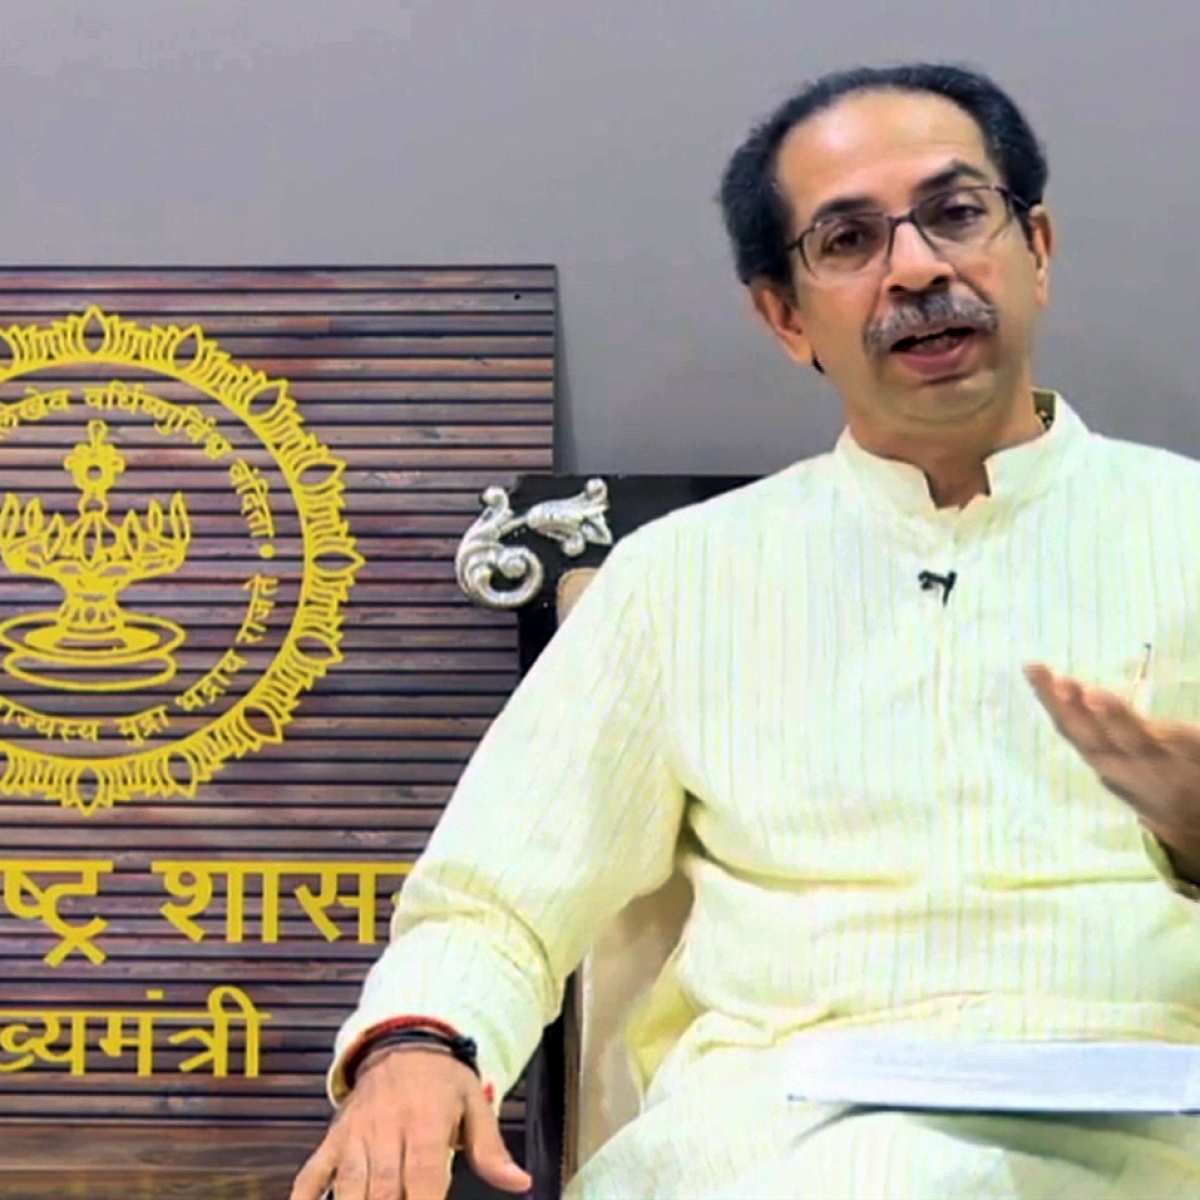 Maharashtra lockdown: CM Uddhav Thackeray says curbs will continue after June 30